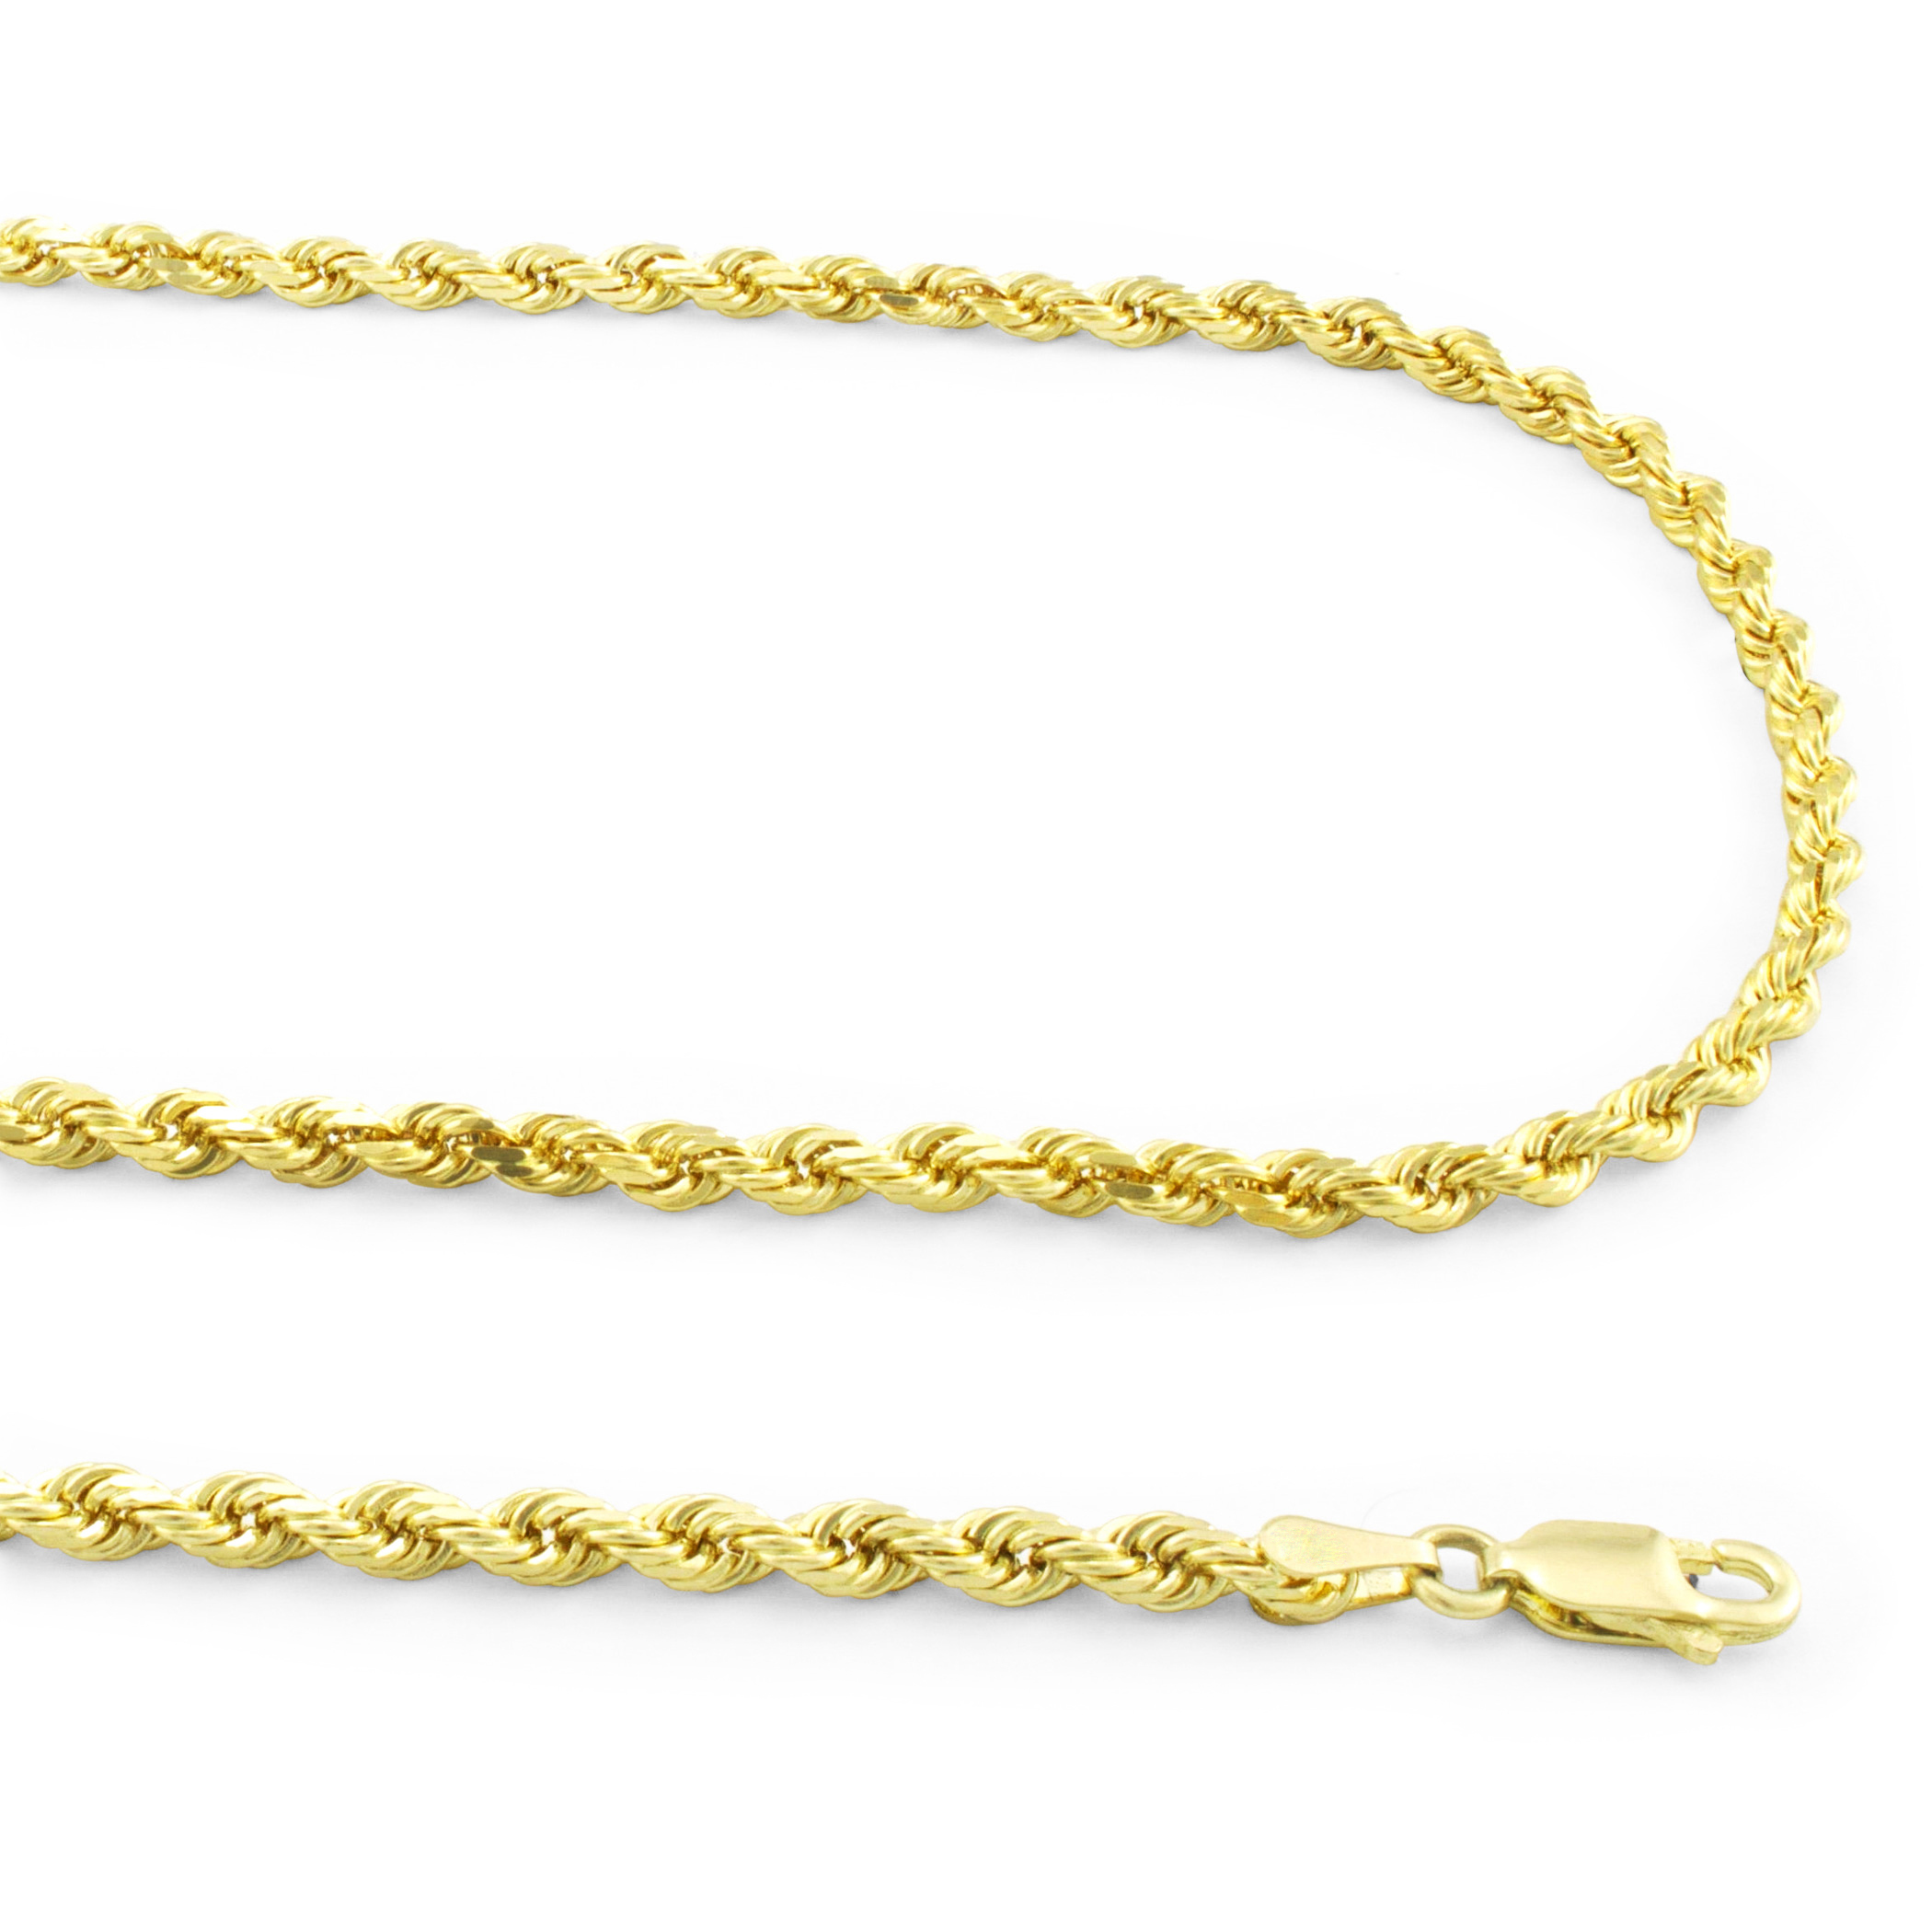 Real-14K-Yellow-Gold-3mm-Diamond-Cut-Rope-Chain-Necklace-Lobster-Clasp-18-034-30-034 thumbnail 37